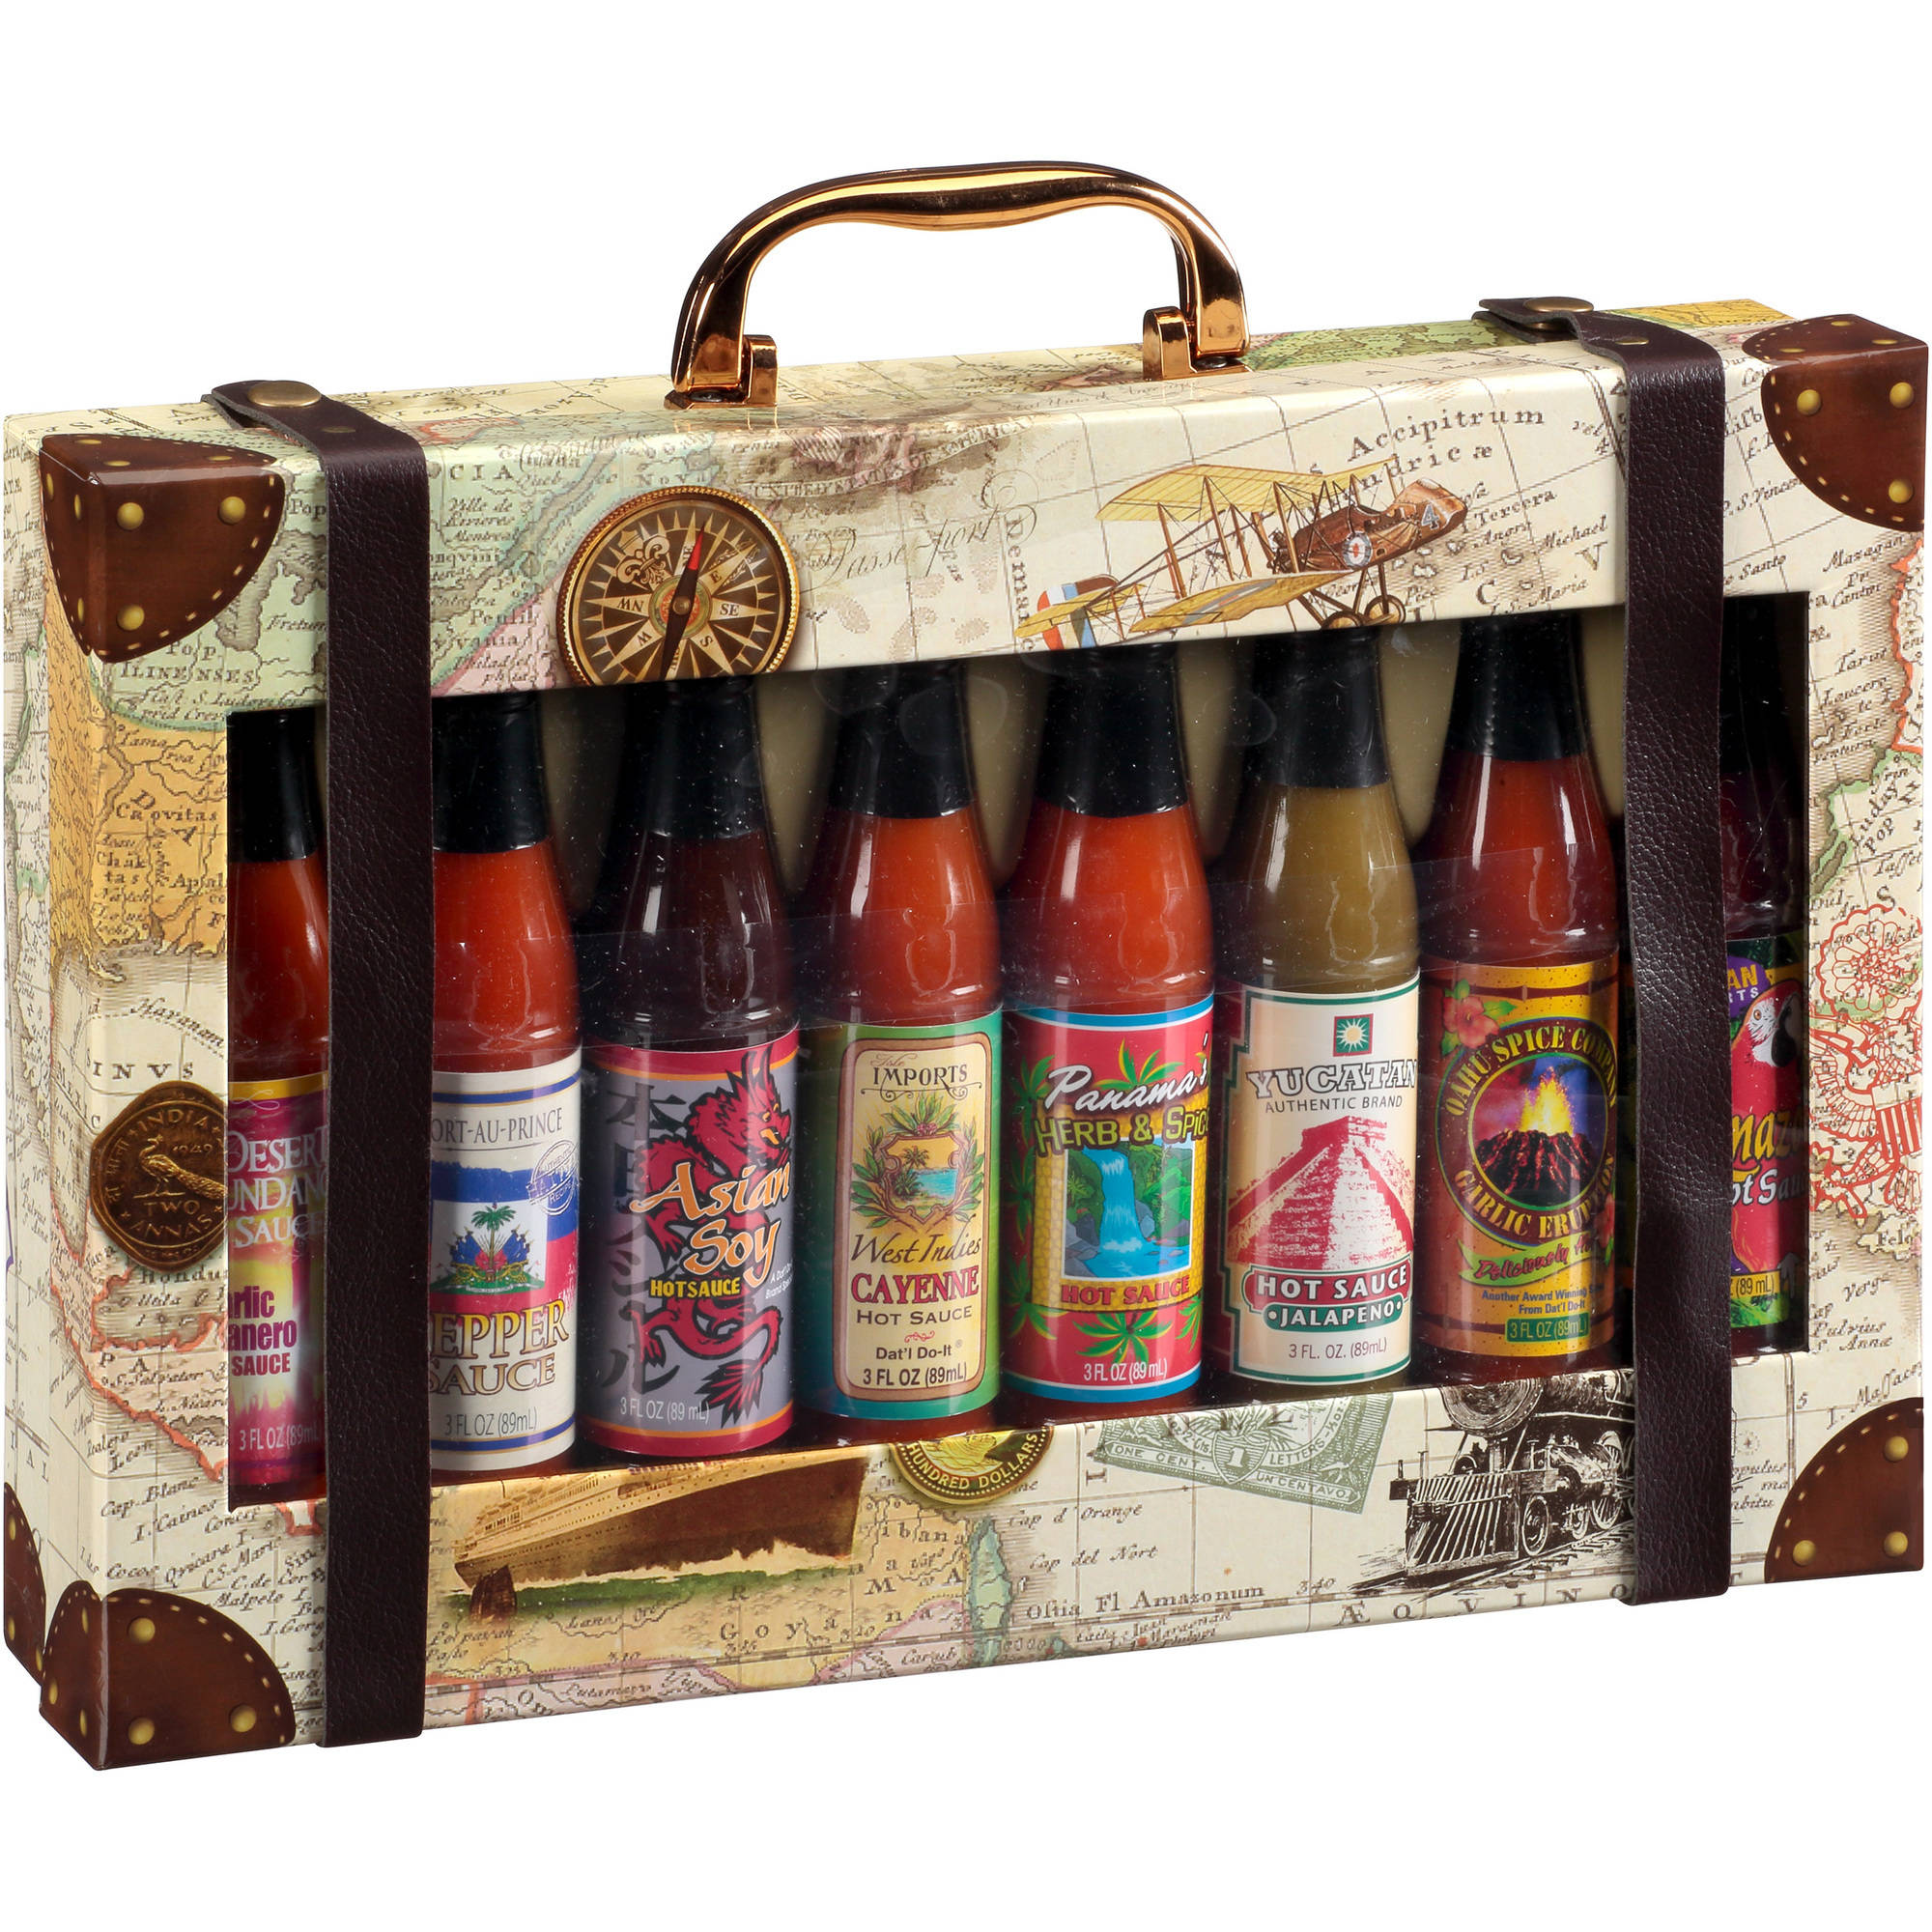 Dat'l Do It Touring America Hot Sauce Collection Holiday Gift Set, 8 piece